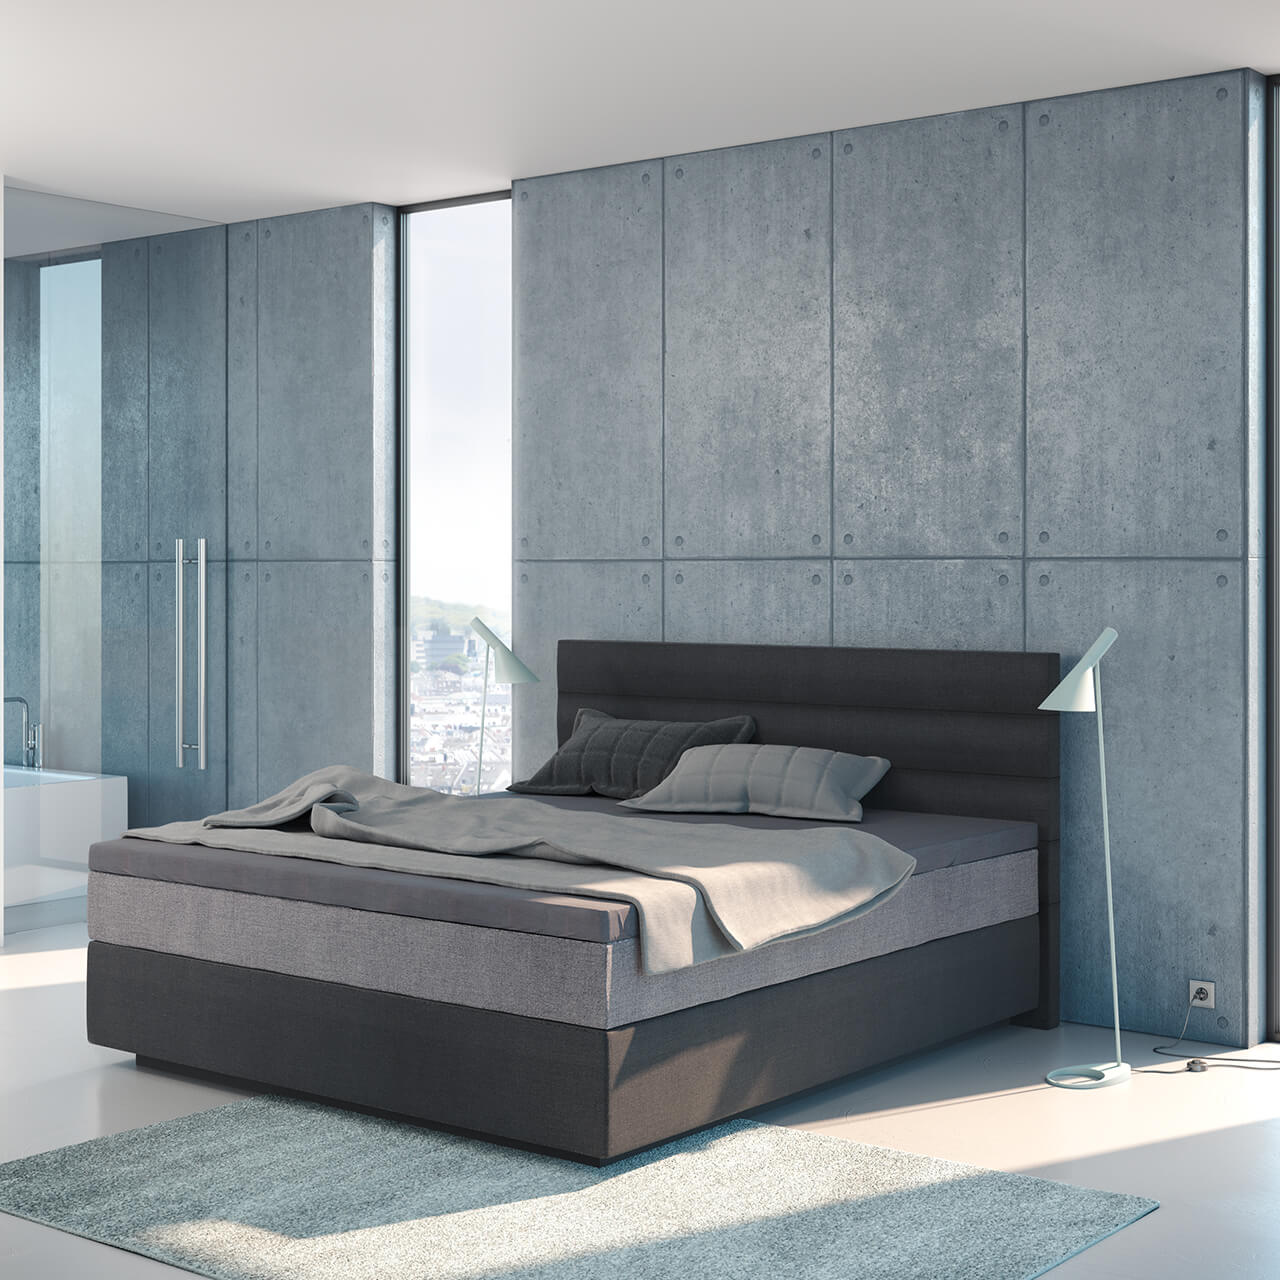 suma boxspring wasserbett topper hoher einstieg suma. Black Bedroom Furniture Sets. Home Design Ideas